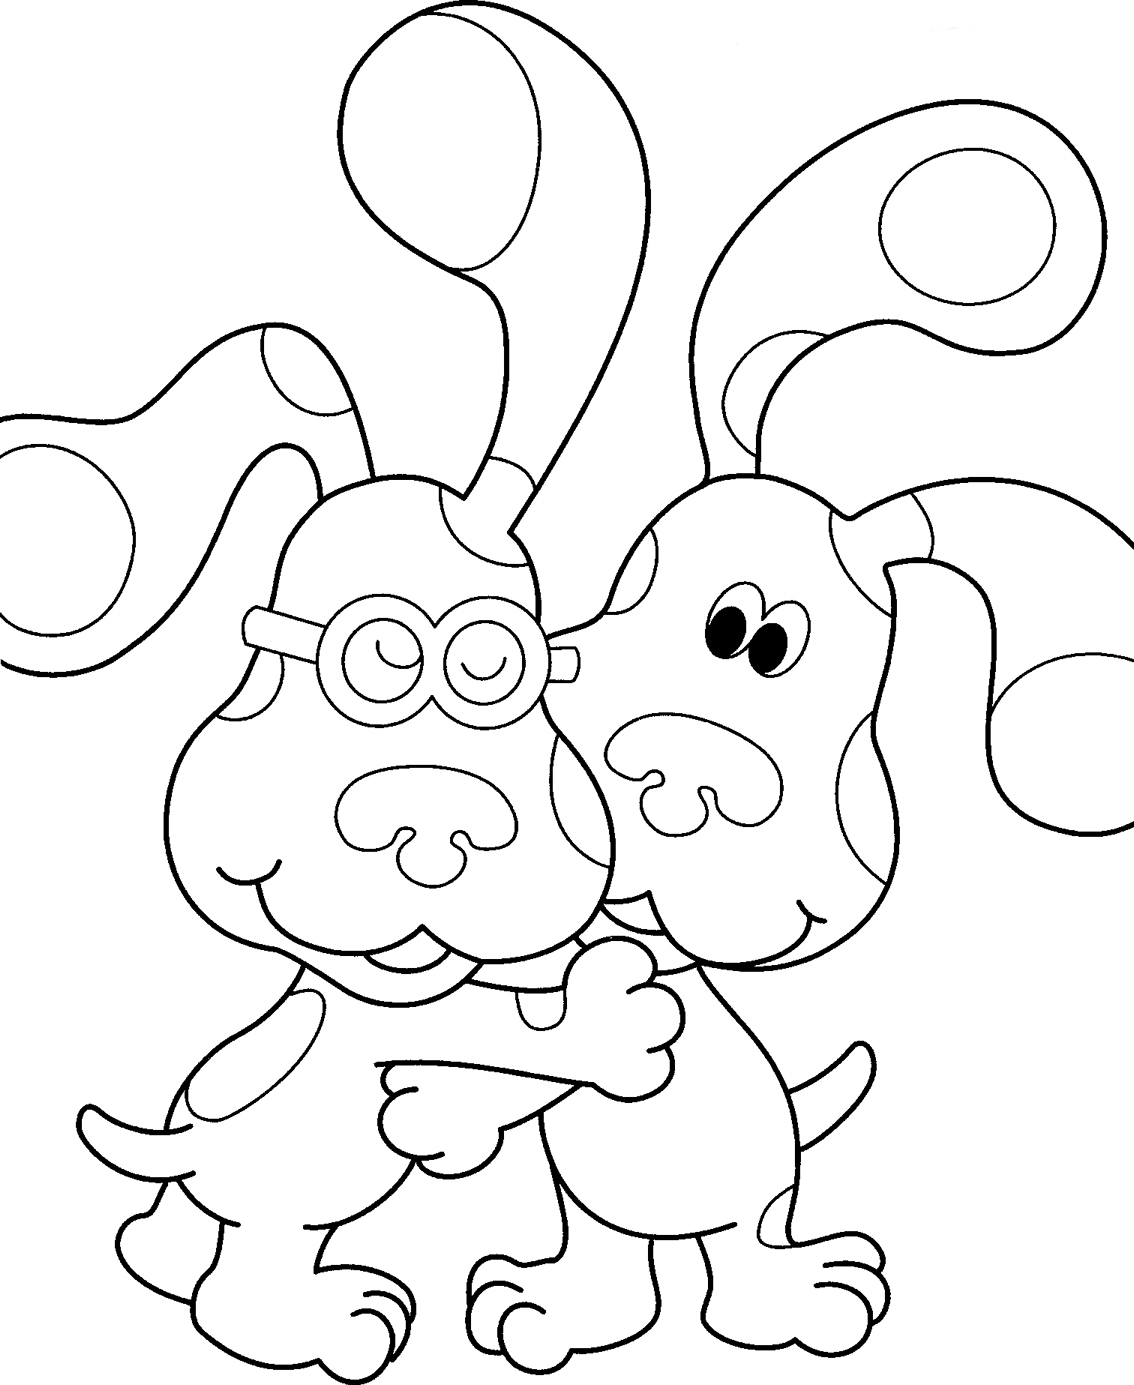 Free nick jr. coloring pages